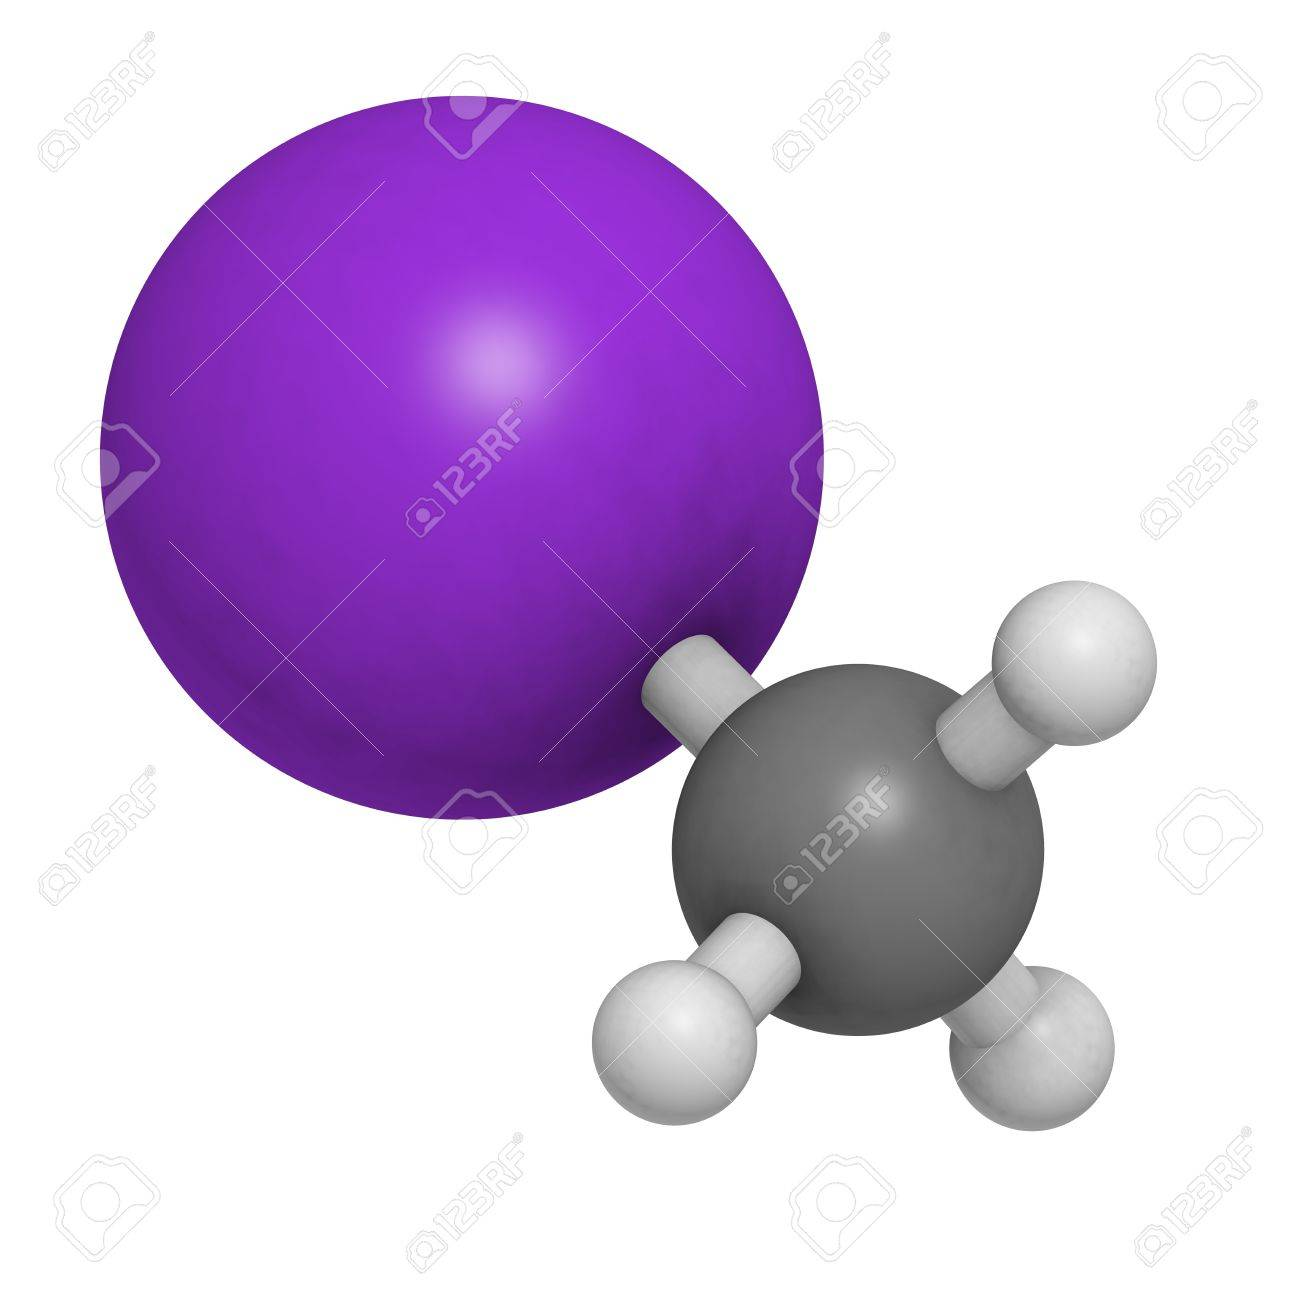 Iodomethane (methyliodide, MeI) pesticide, soil disinfectant and fumigant, molecular model. Atoms are represented as spheres with conventional color coding: hydrogen (white), carbon (grey), iodine (purple) Stock Photo - 18502412